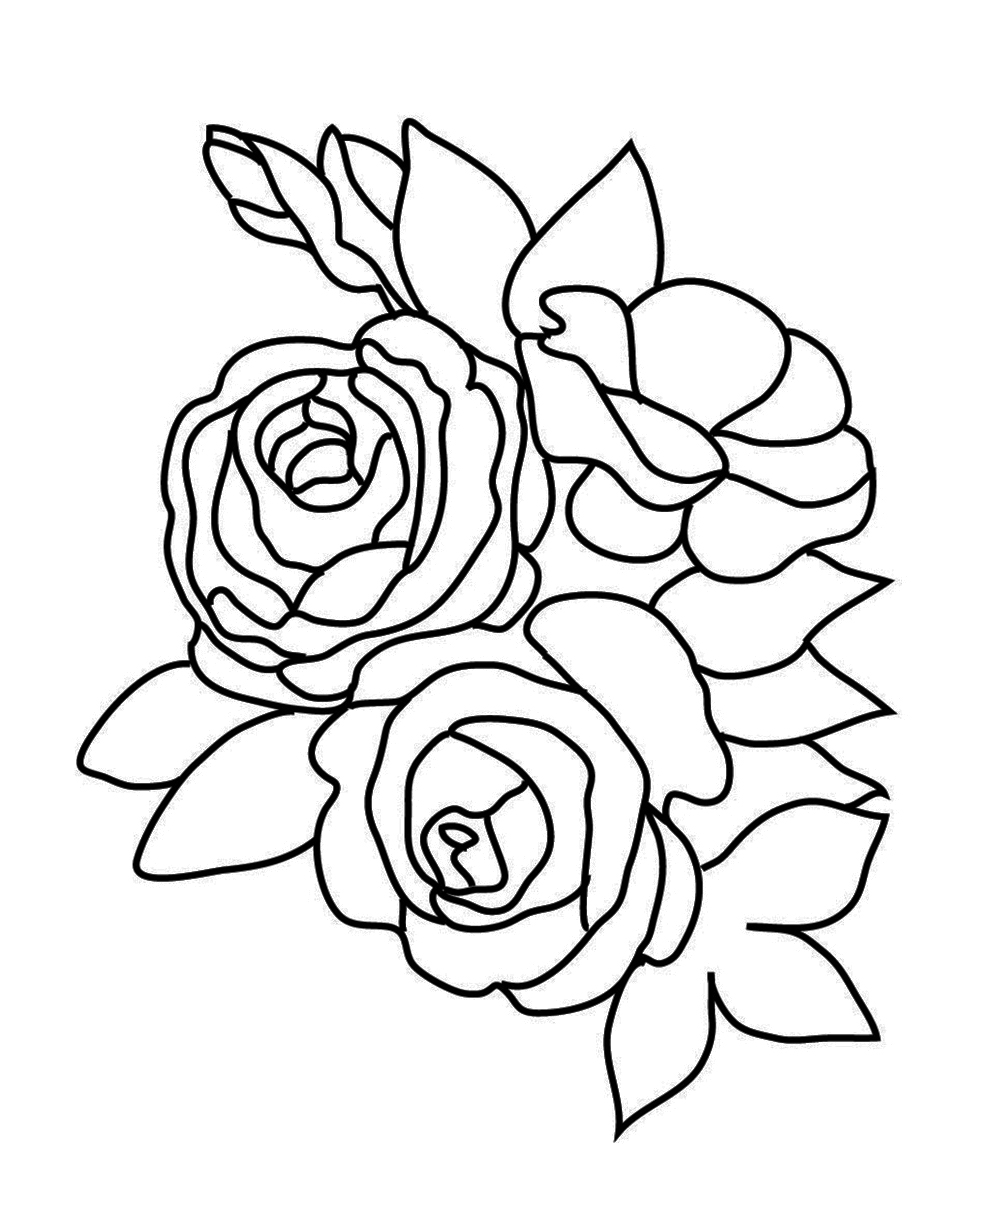 a coloring page of a rose flower coloring pages a rose page a of coloring